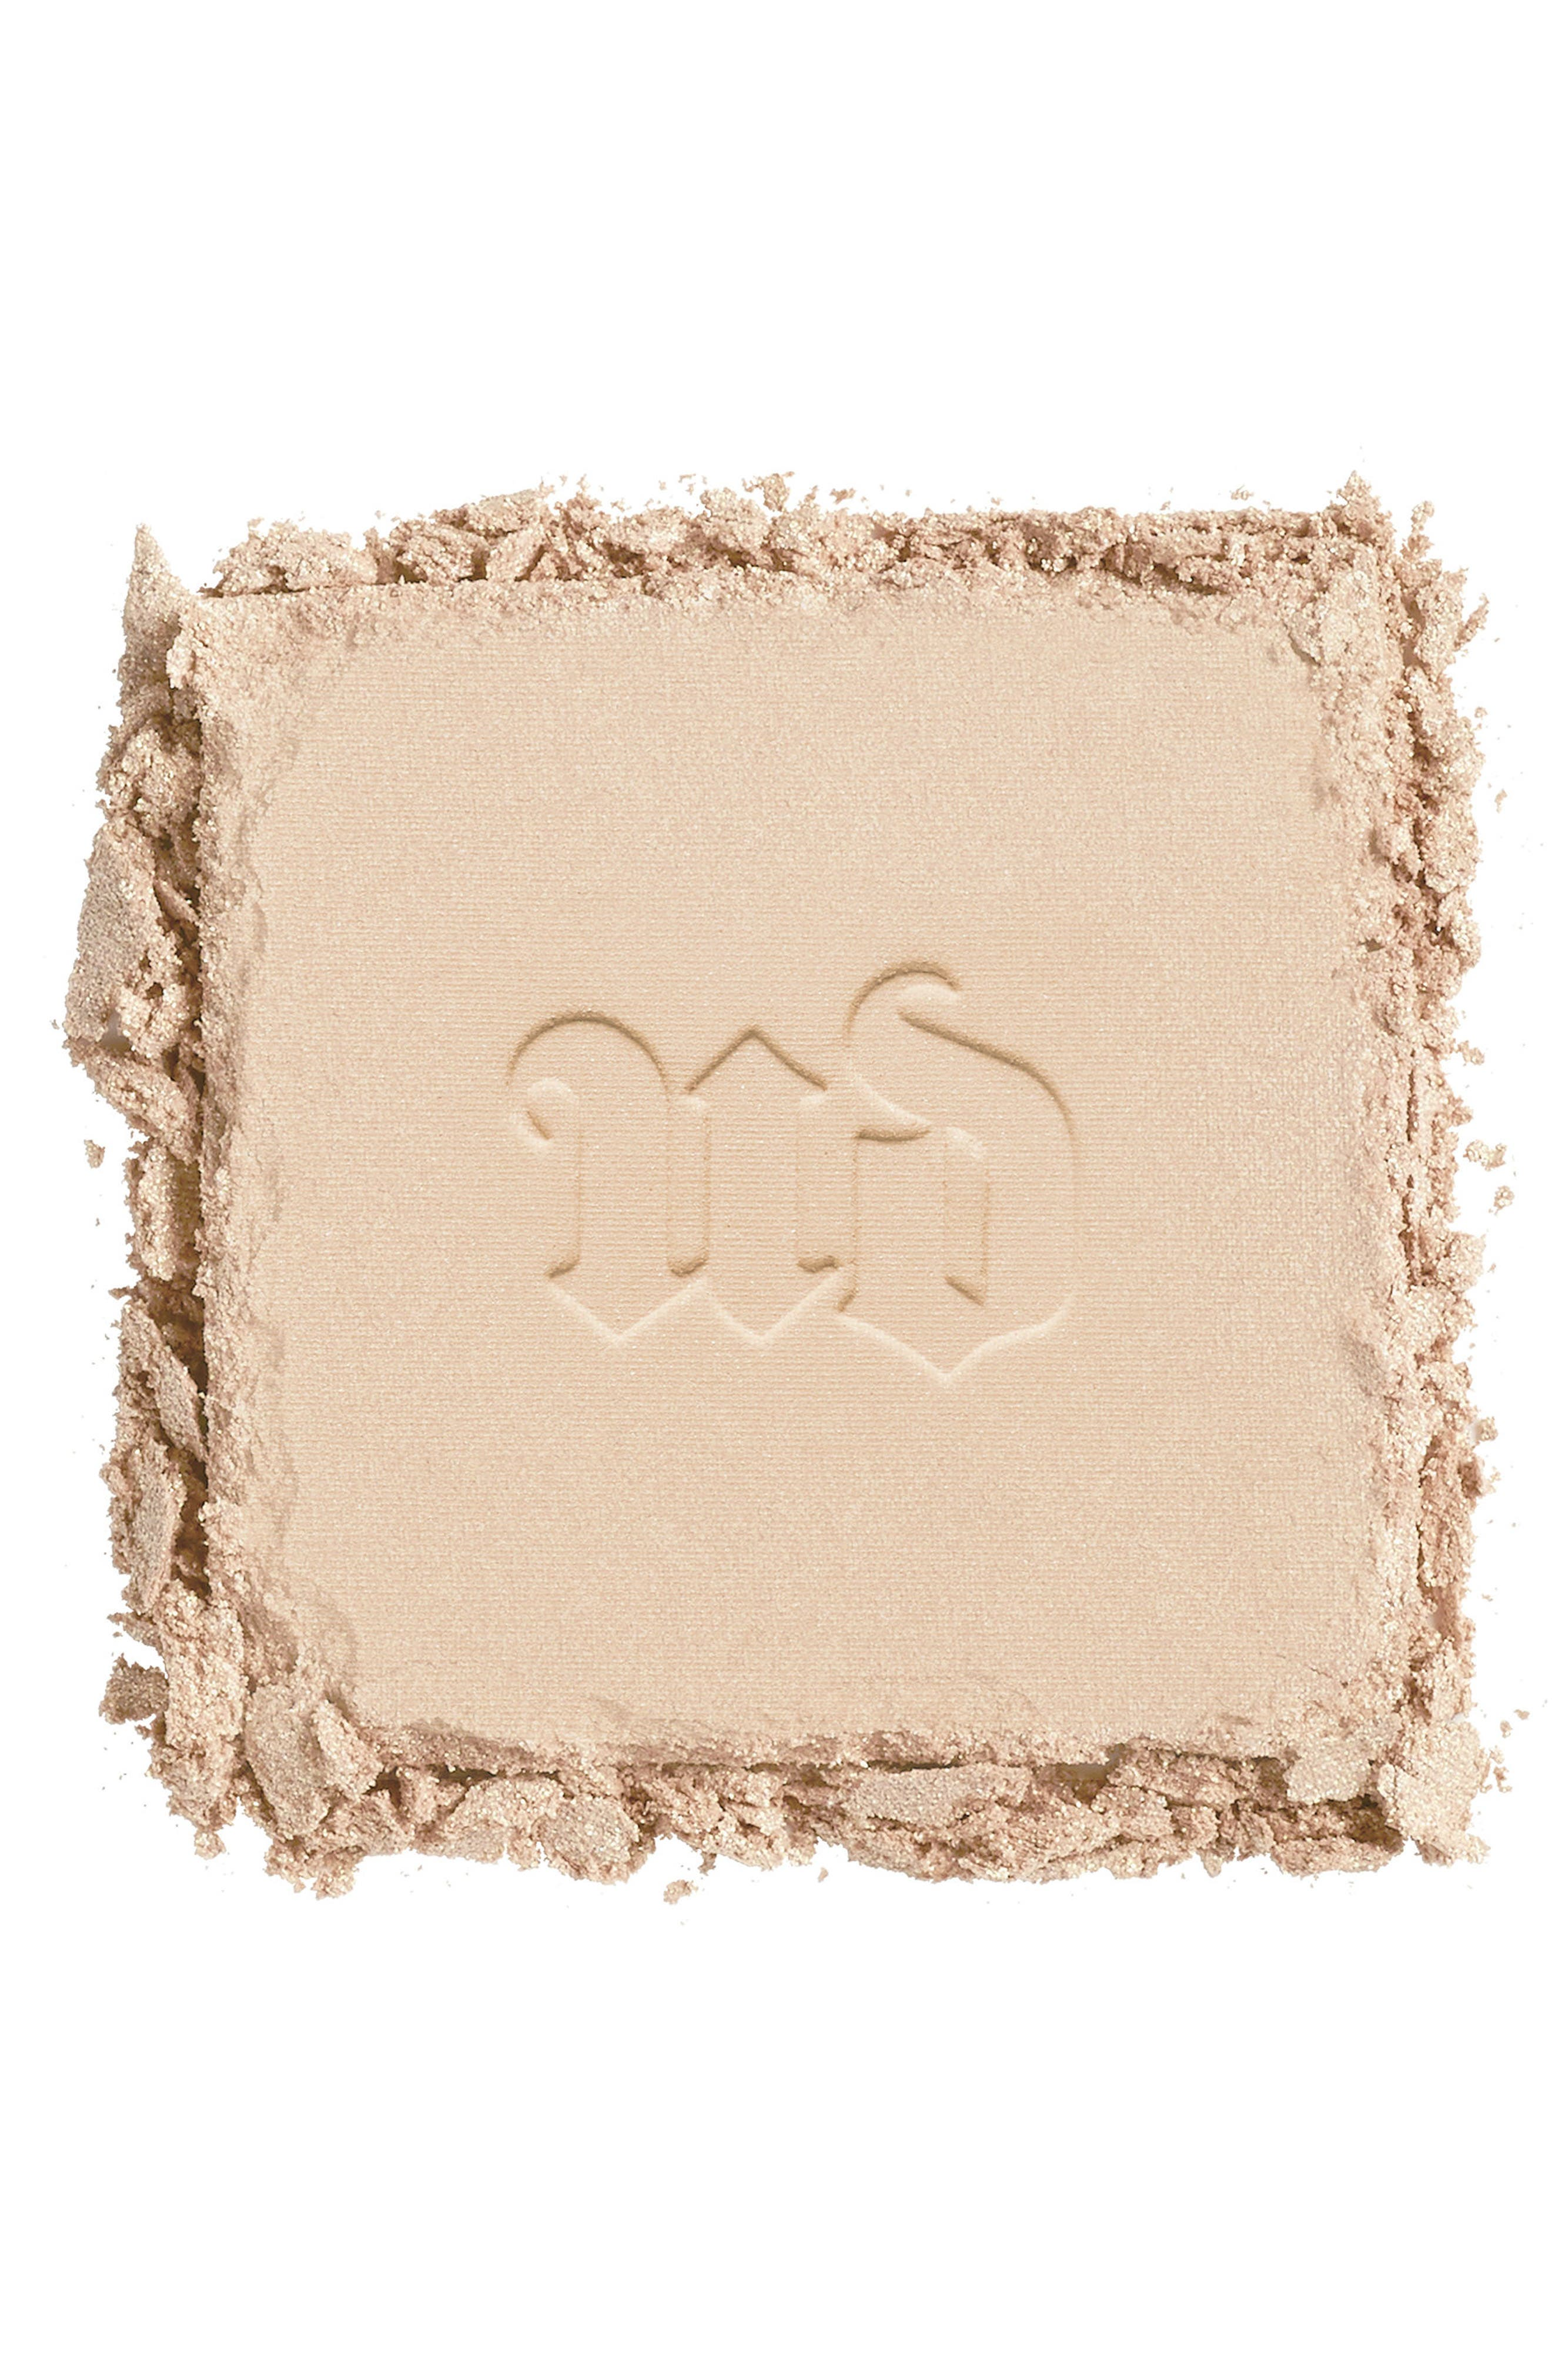 Naked Skin The Illuminizer Translucent Pressed Beauty Powder,                             Alternate thumbnail 6, color,                             NO COLOR